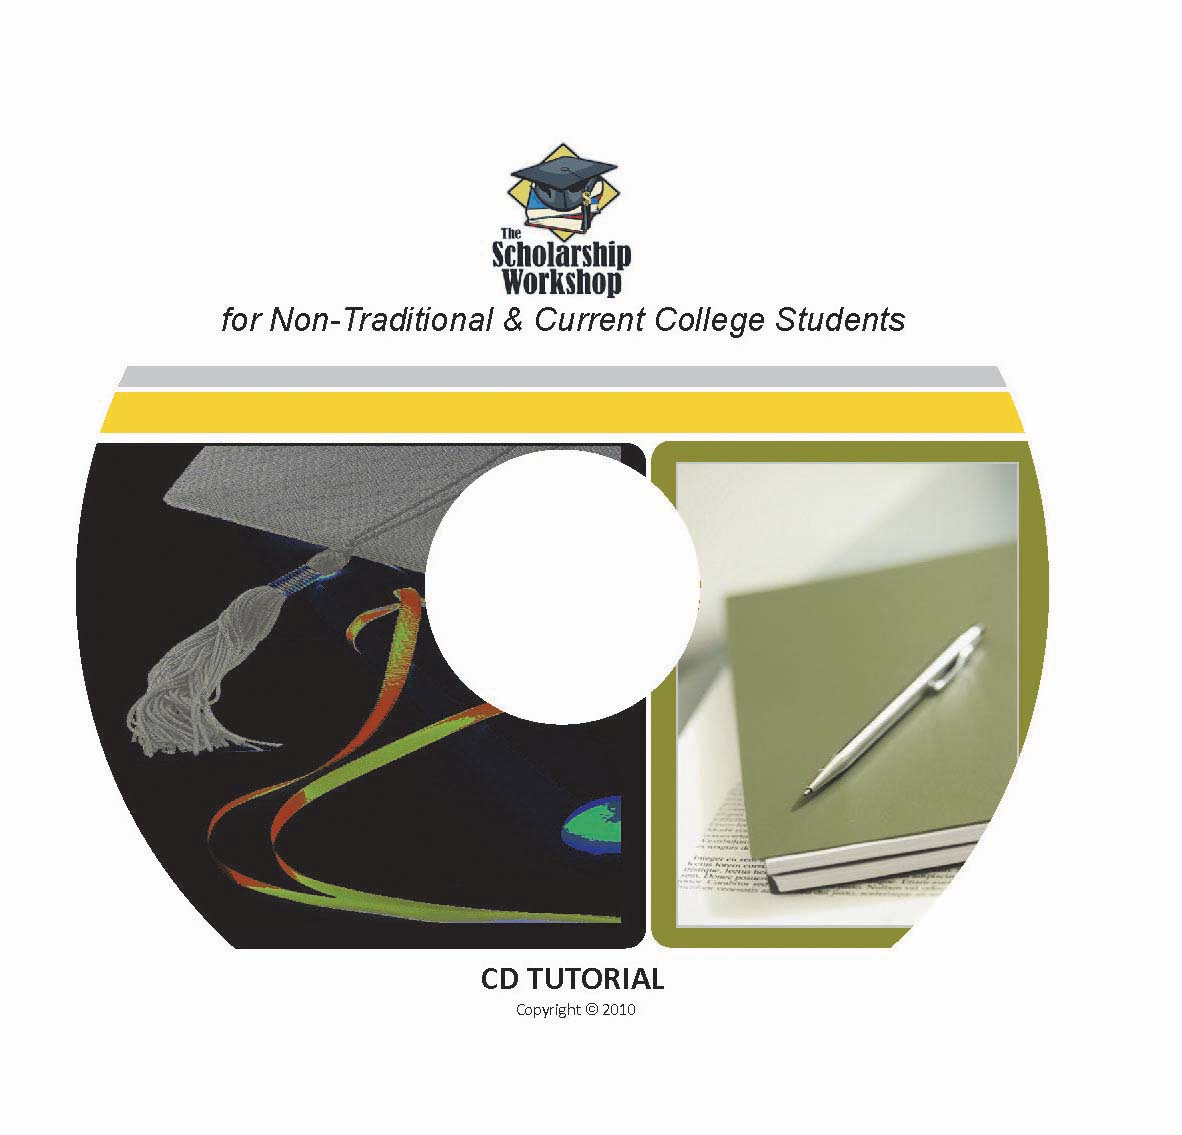 The Scholarship Workshop CD for Nontraditional & Current College Students